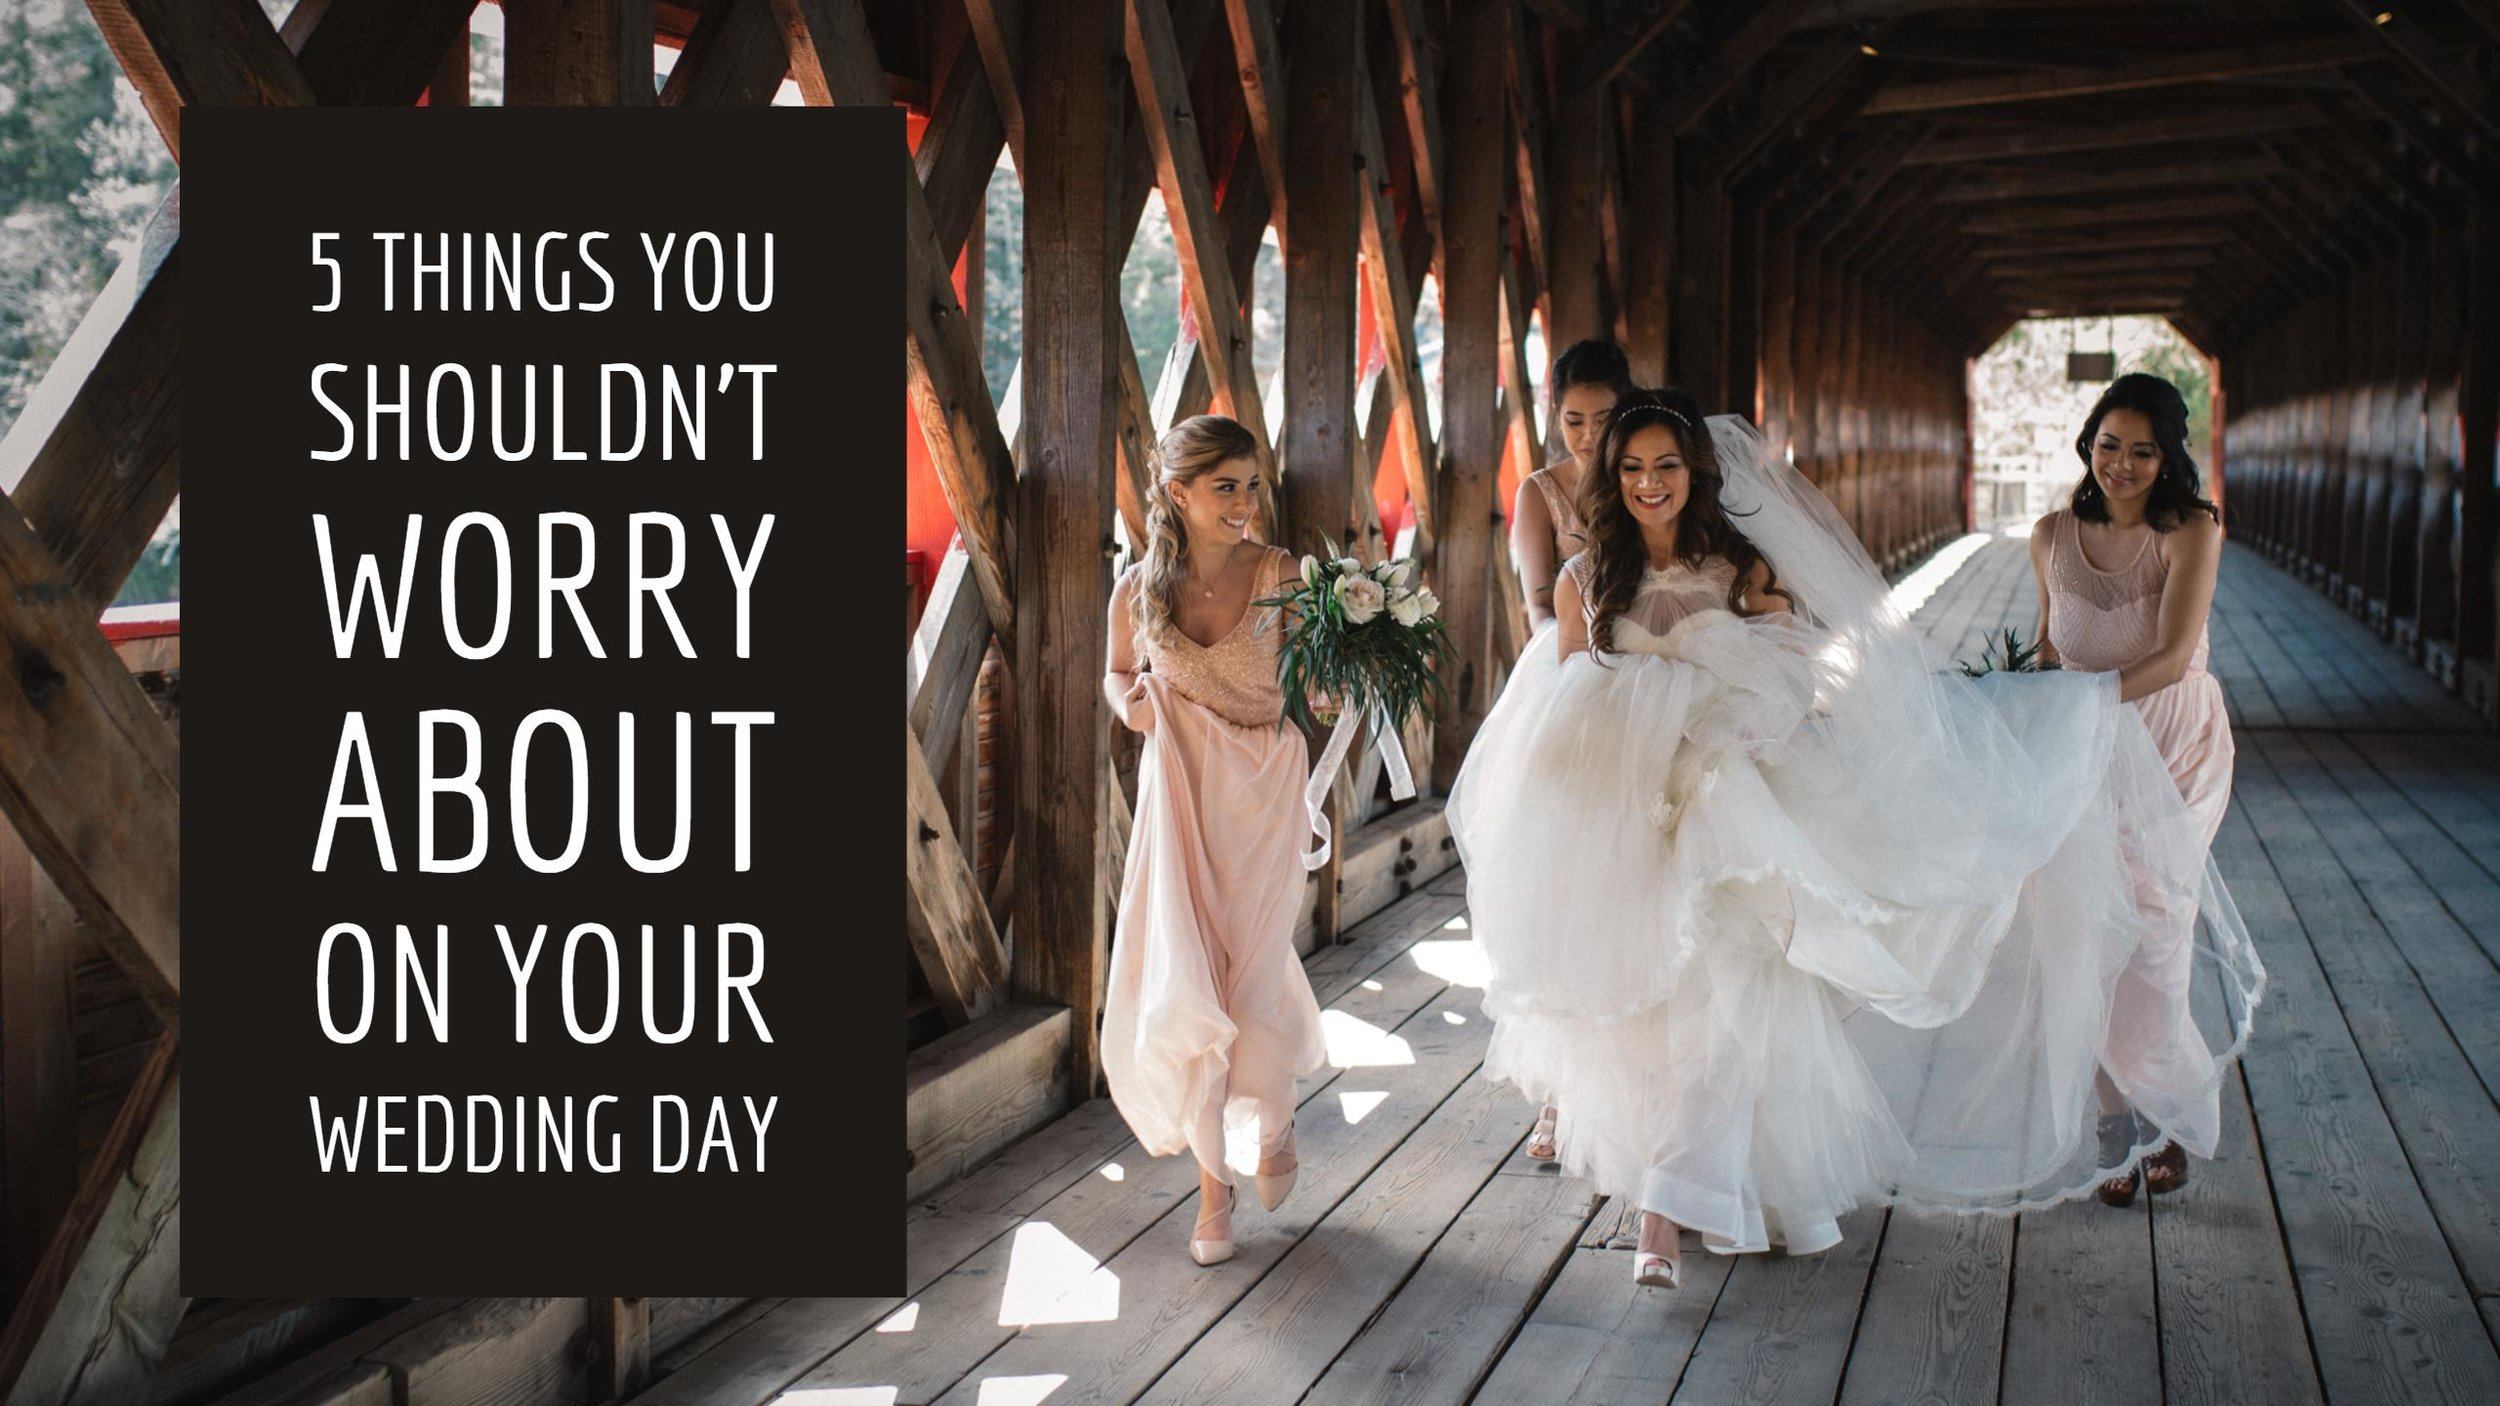 Mocha Tree Studios Ottawa Wedding and Engagement Photographer and Videographer Dark Moody Intimate Authentic Modern Romantic Cinematic Best Candid 5 THINGS YOU SHOULDN'T WORRY ABOUT ON YOUR WEDDING DAY. AND WHAT CAN HELP YOU AVOID THEM! 1